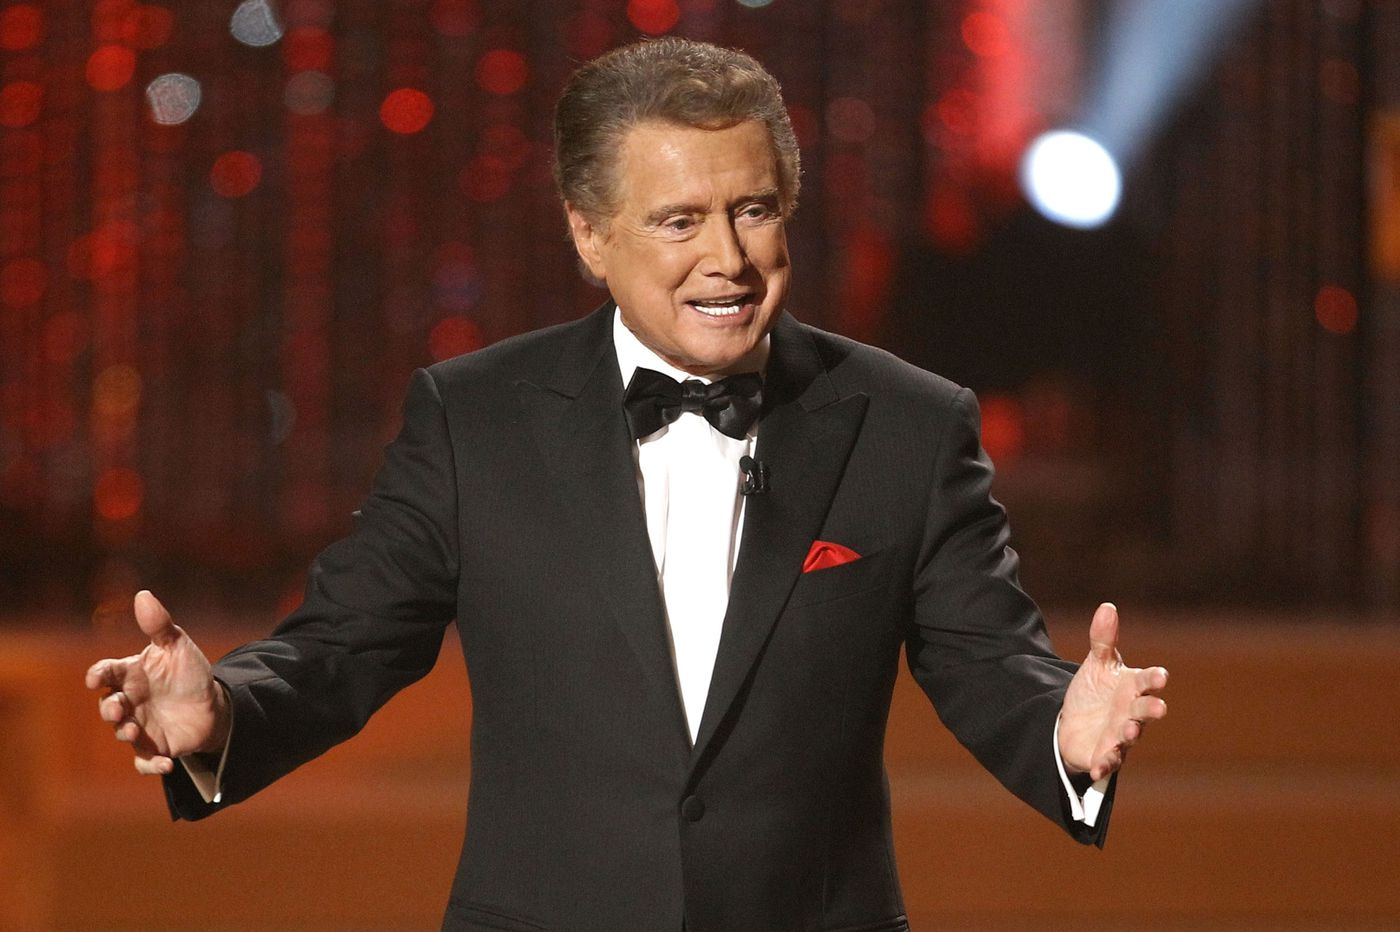 Regis Philbin, television personality and host, dies at 88